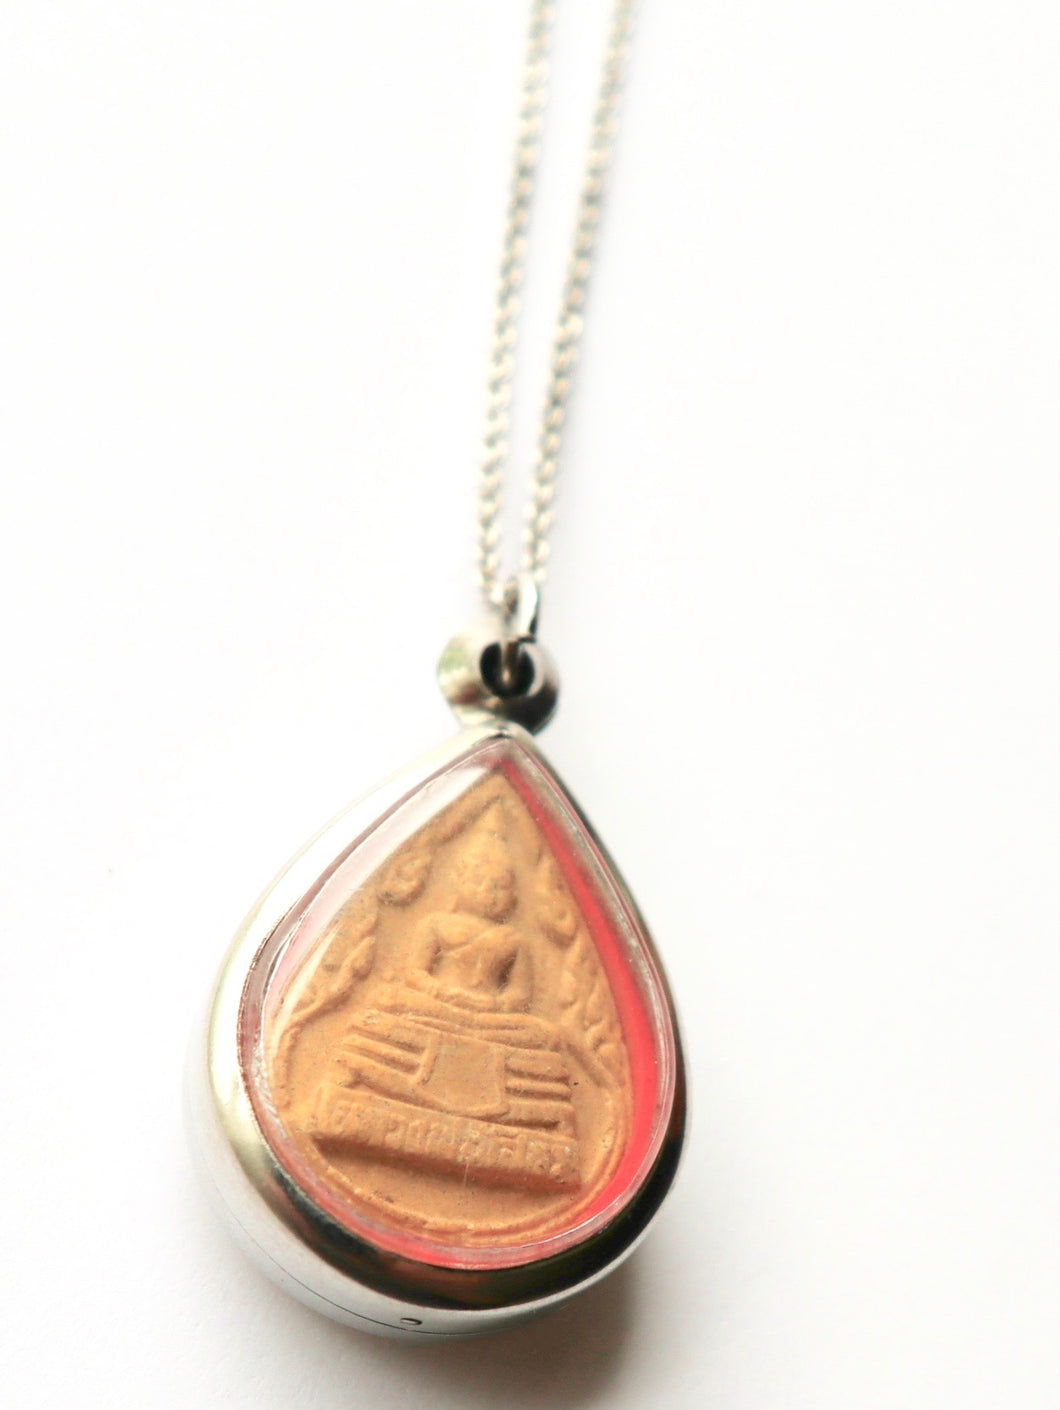 Guna One of a Kind Buddha Necklace